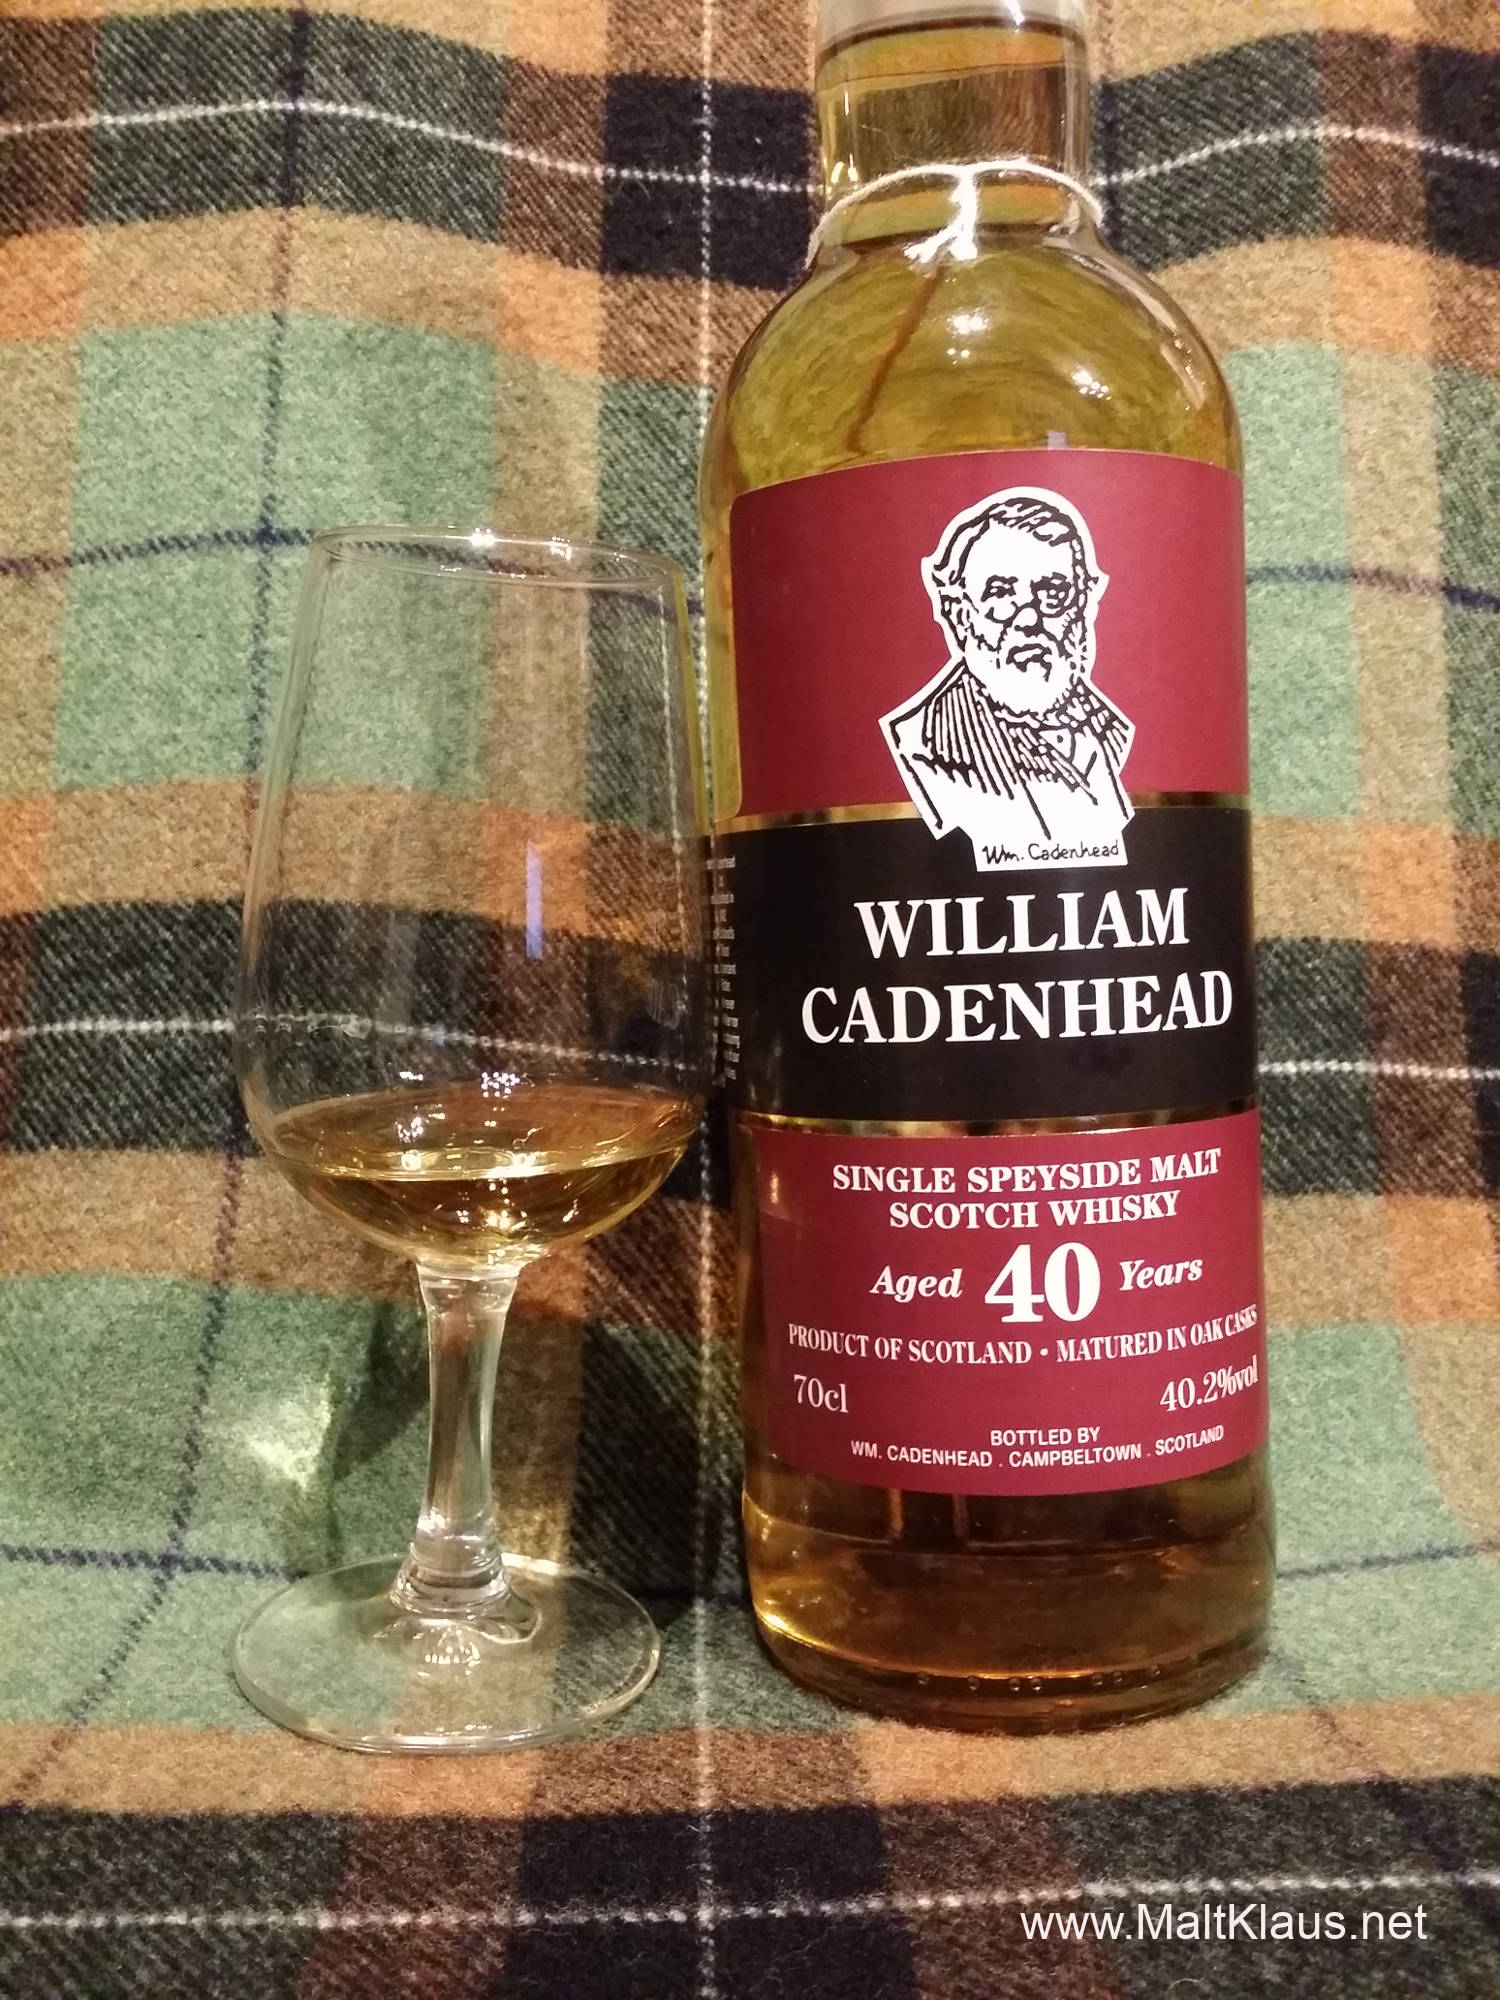 William Cadenhead 40yo Single Speyside Malt